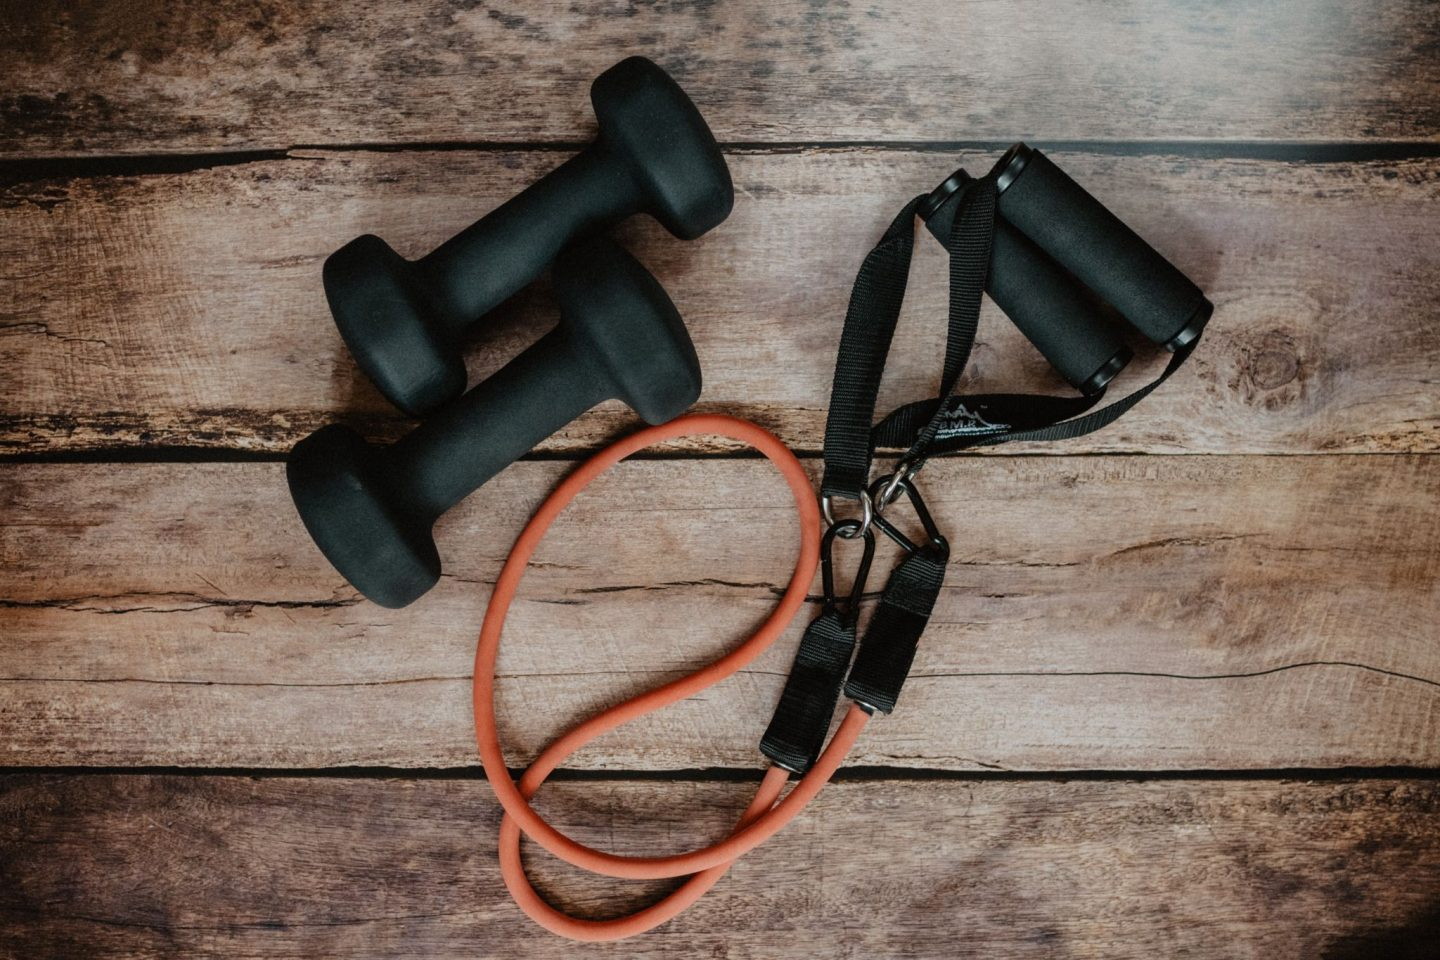 PLANNING TO WORK OUT AT HOME? HERE ARE THE ESSENTIAL ITEMS YOU NEED FIRST